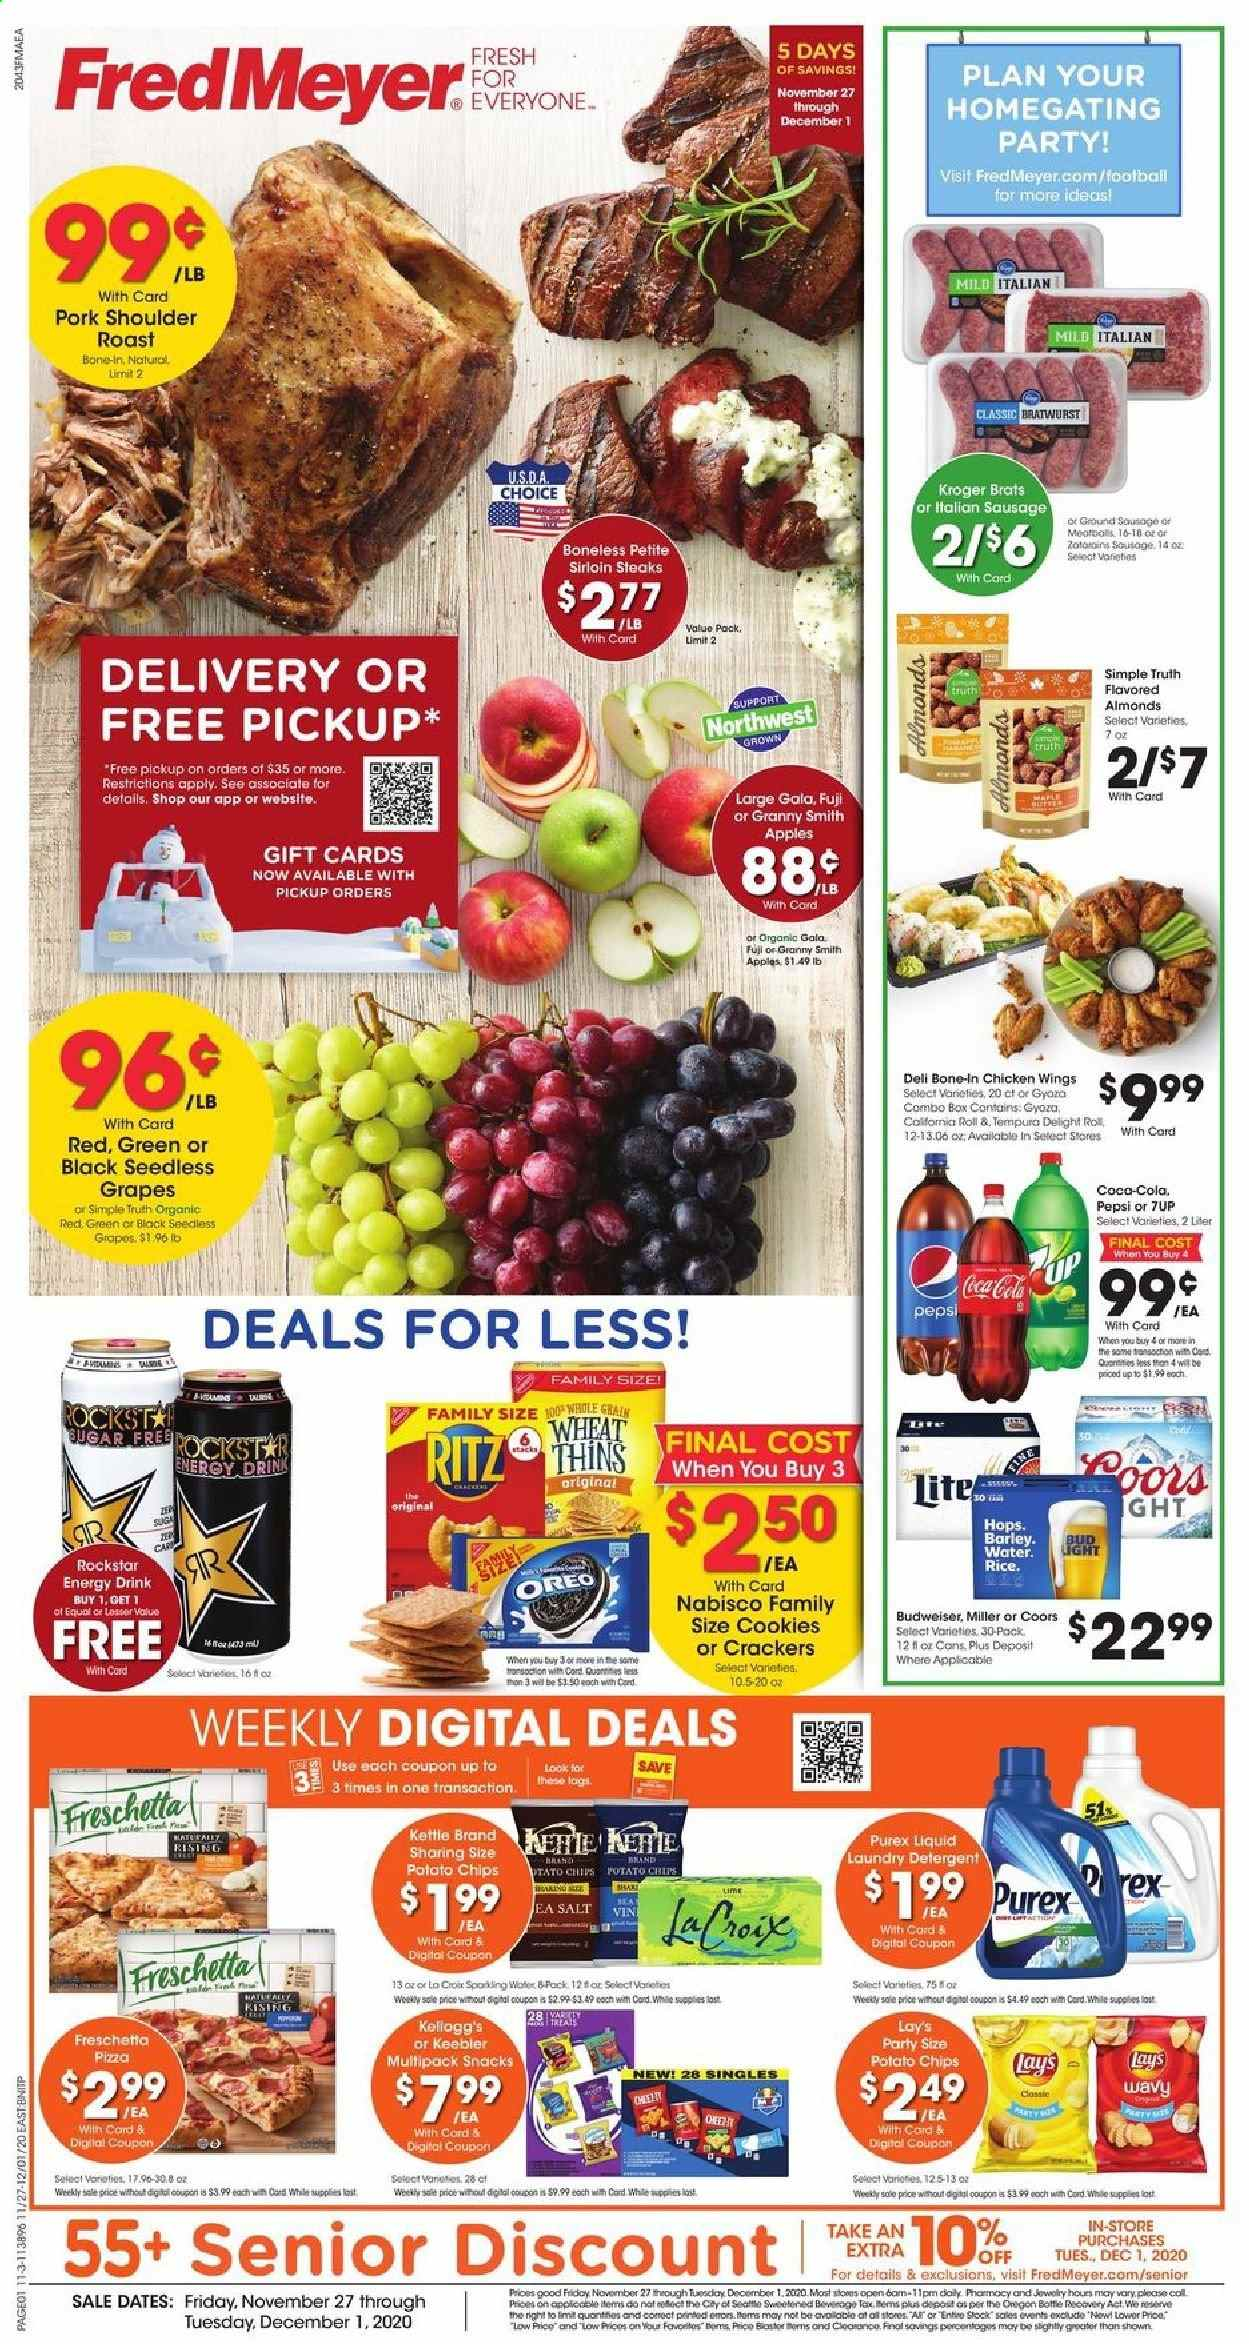 Fred Meyer Flyer - 11.27.2020 - 12.01.2020 - Sales products - almonds, apples, barley, box, Budweiser, coca-cola, cookies, detergent, grapes, rice, sausage, seedless grapes, pizza, pork meat, pork shoulder, potato chips, chicken, Pepsi, Oreo, chicken wings, chips, snack, salt, energy drink, Lay's, Coors, laundry detergent, úl, Apple, kettle. Page 1.